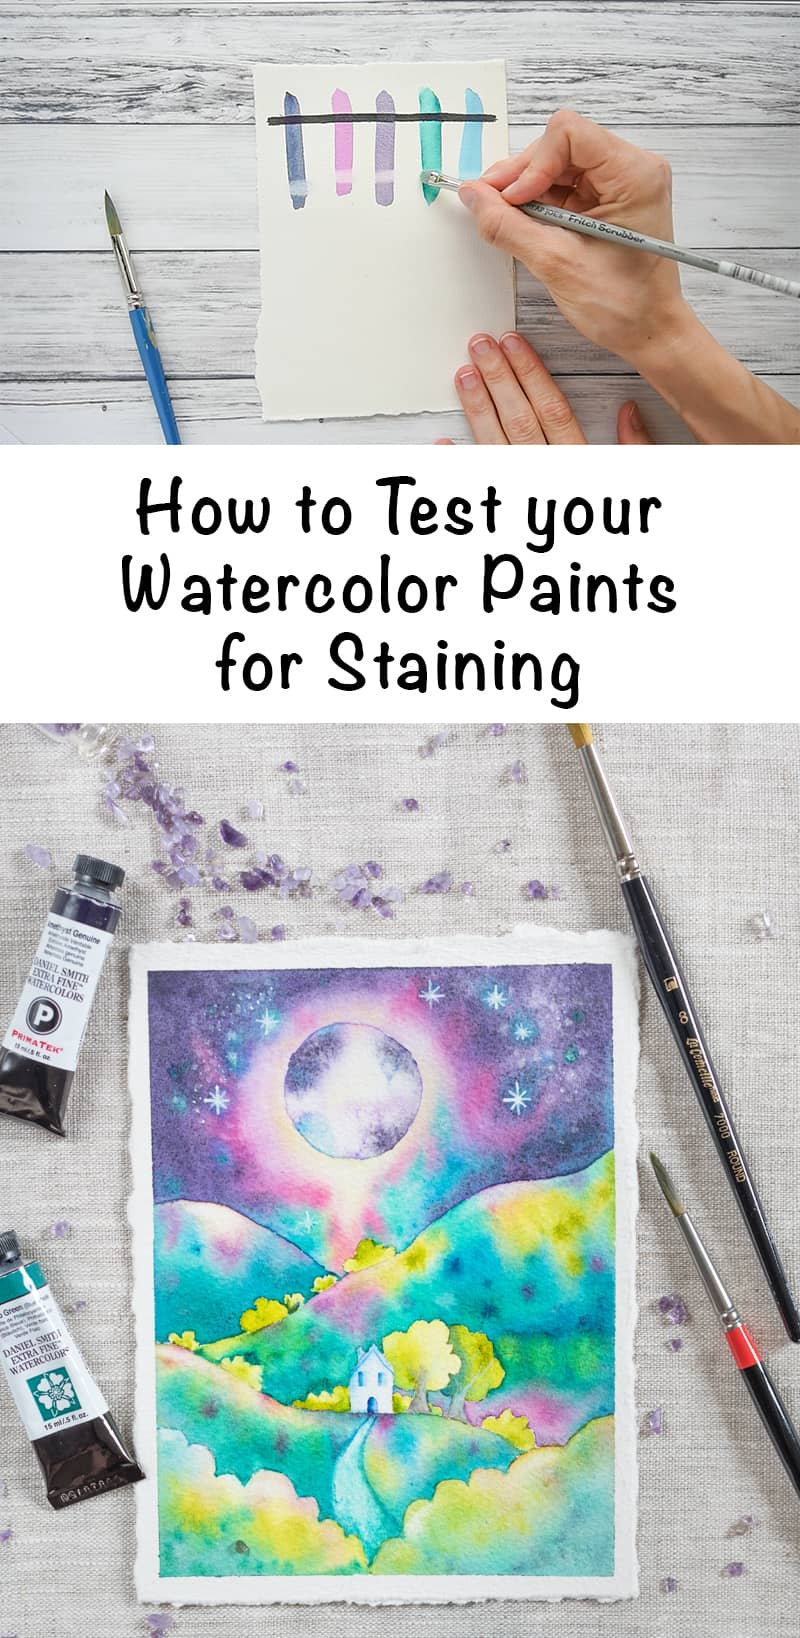 How to Test your Watercolor Paints for Staining is Live on Skillshare!